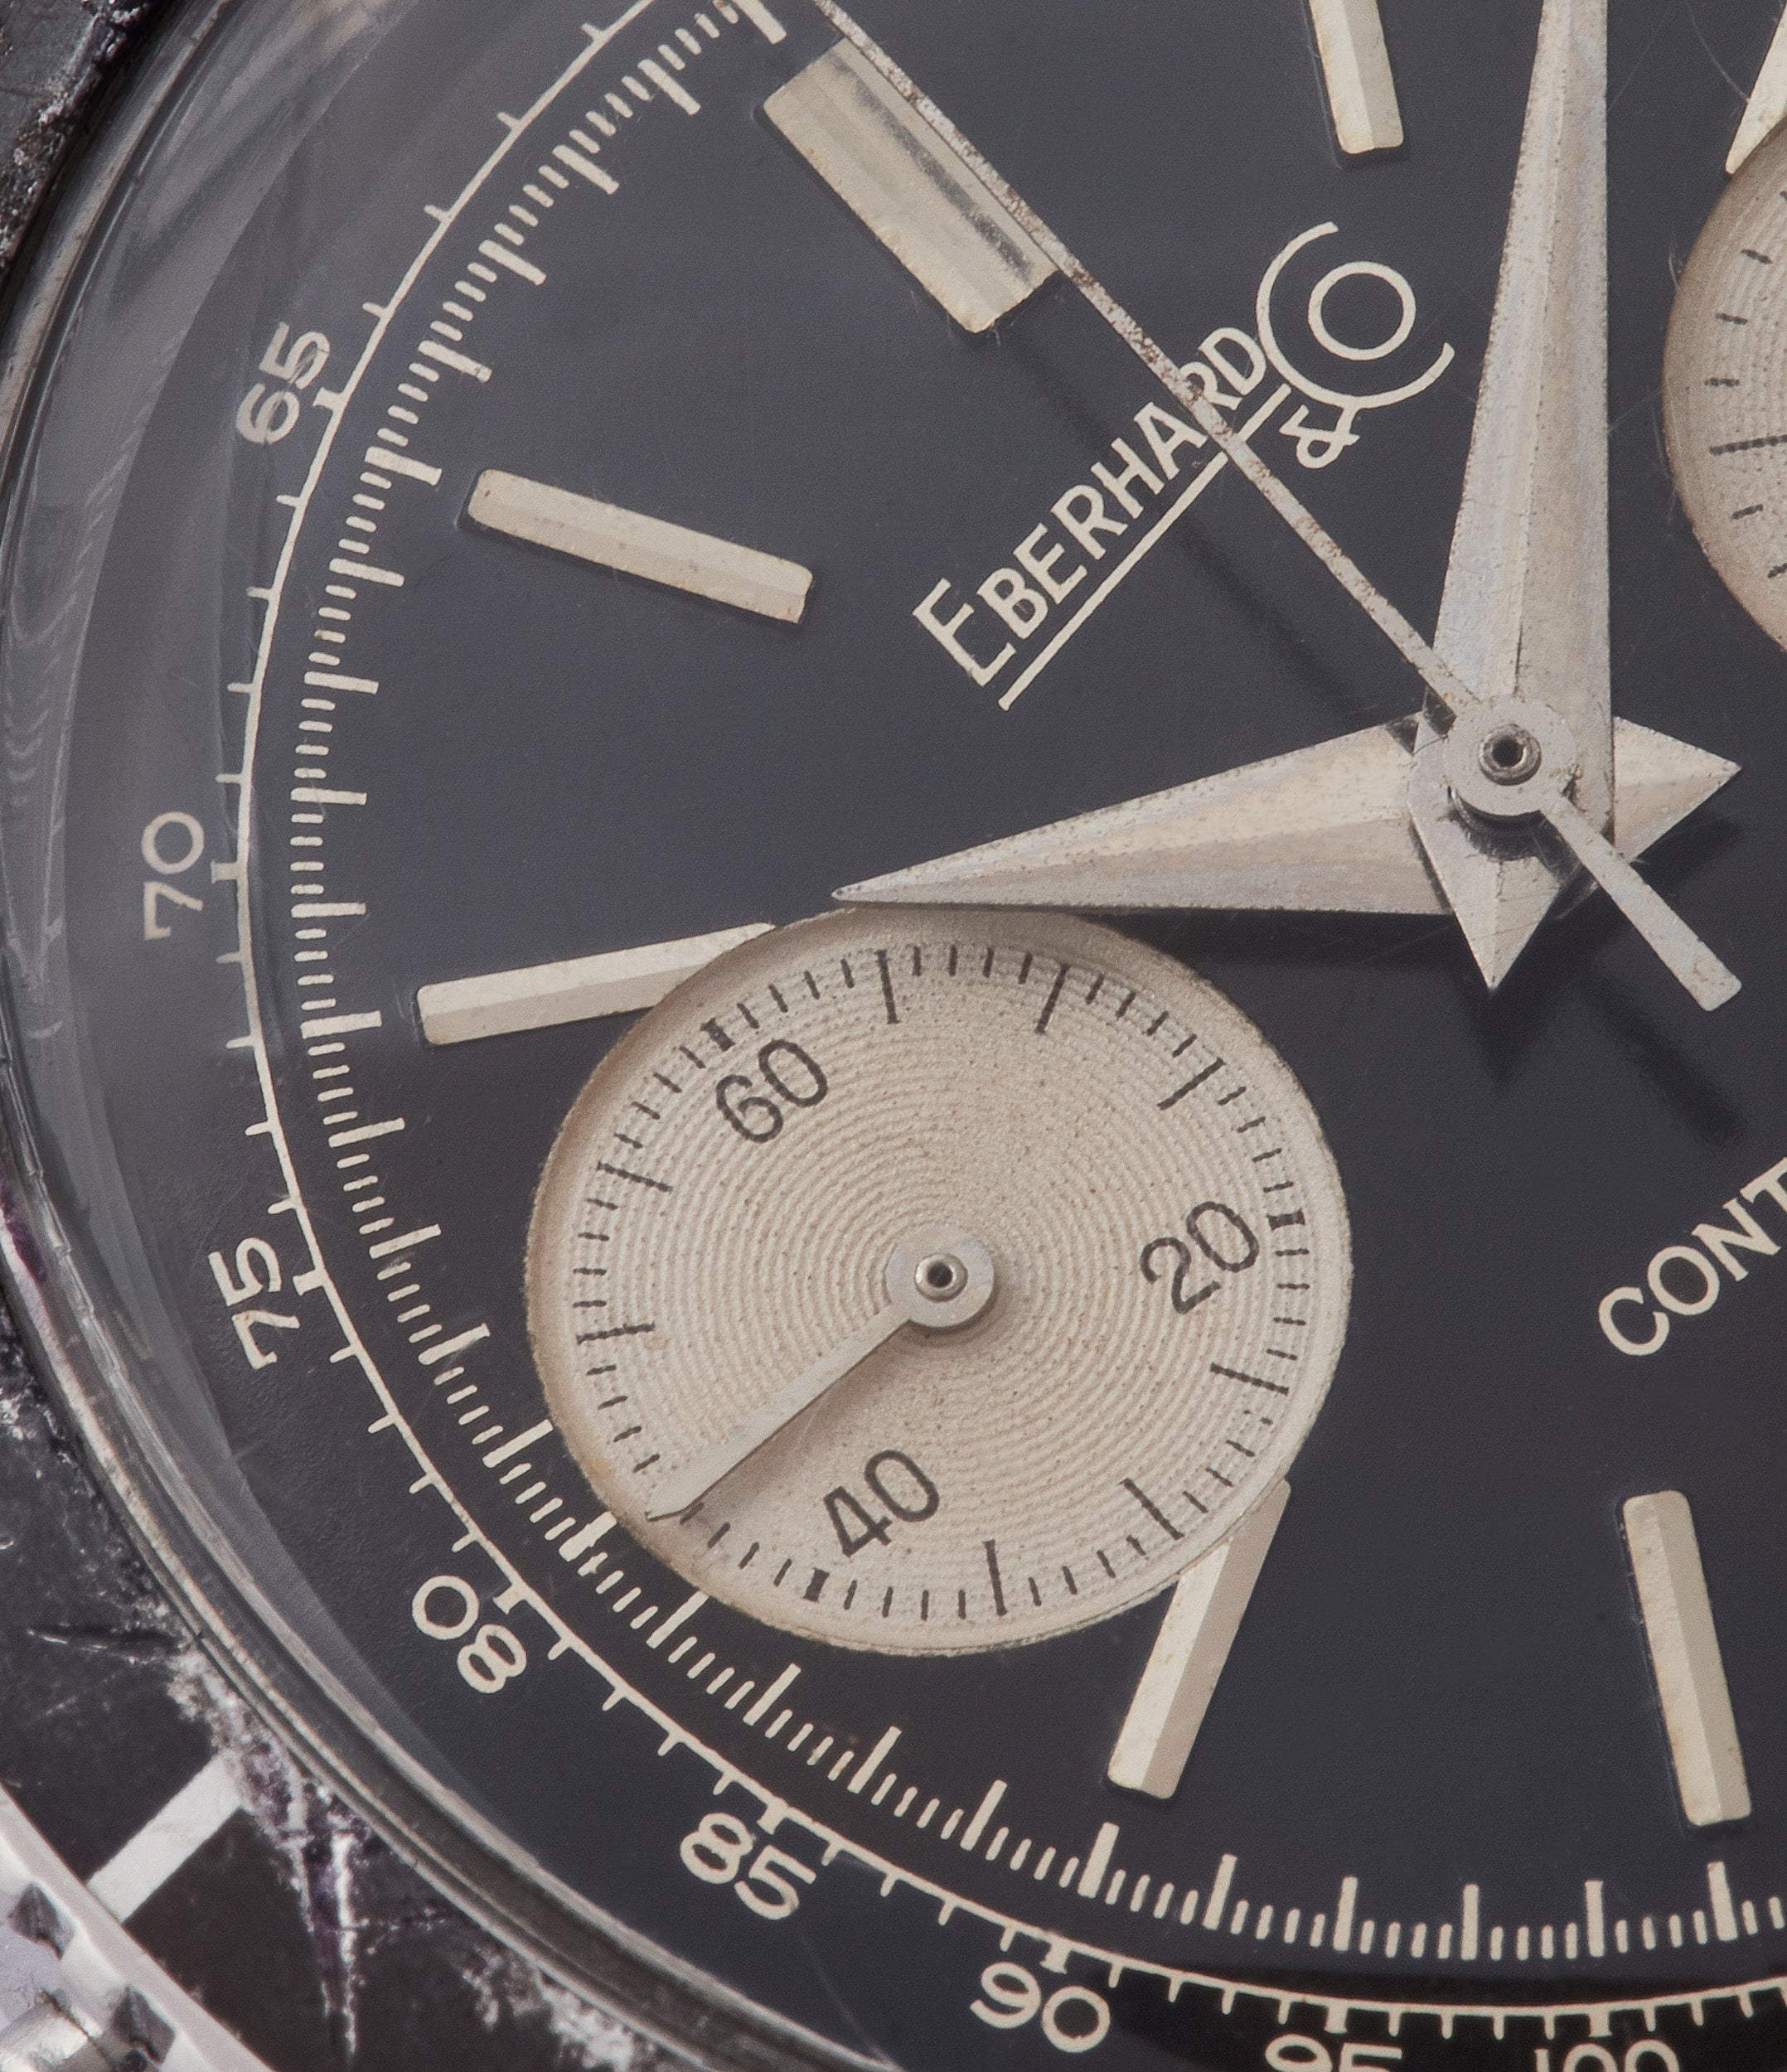 black dial vintage Eberhard Contograf chronograph steel sports watch for sale online at A Collected Man London UK specialist of rare watches